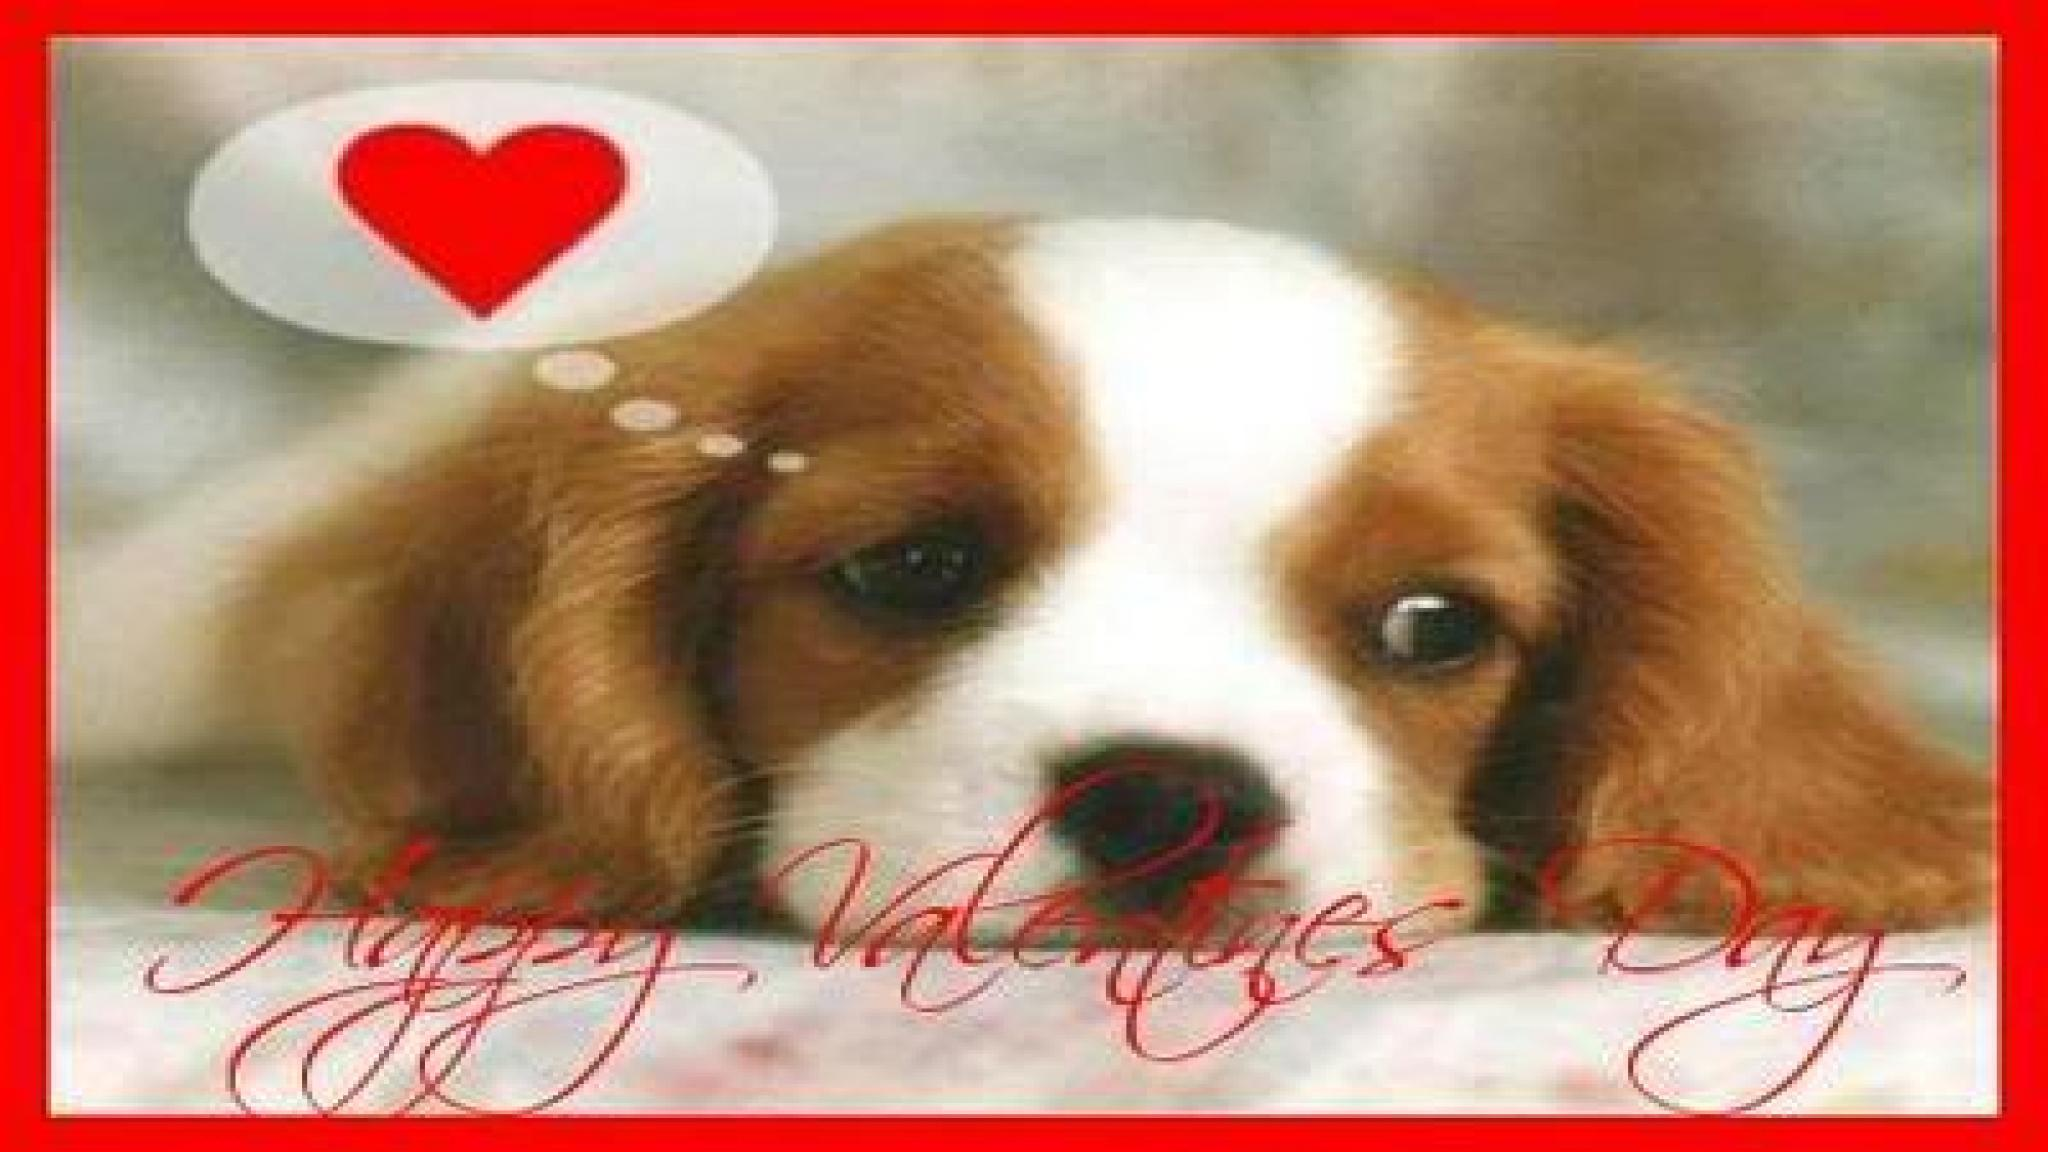 JP3CI2R Valentine's Day Puppies Free Wallpaper 400x305 - Picserio.com